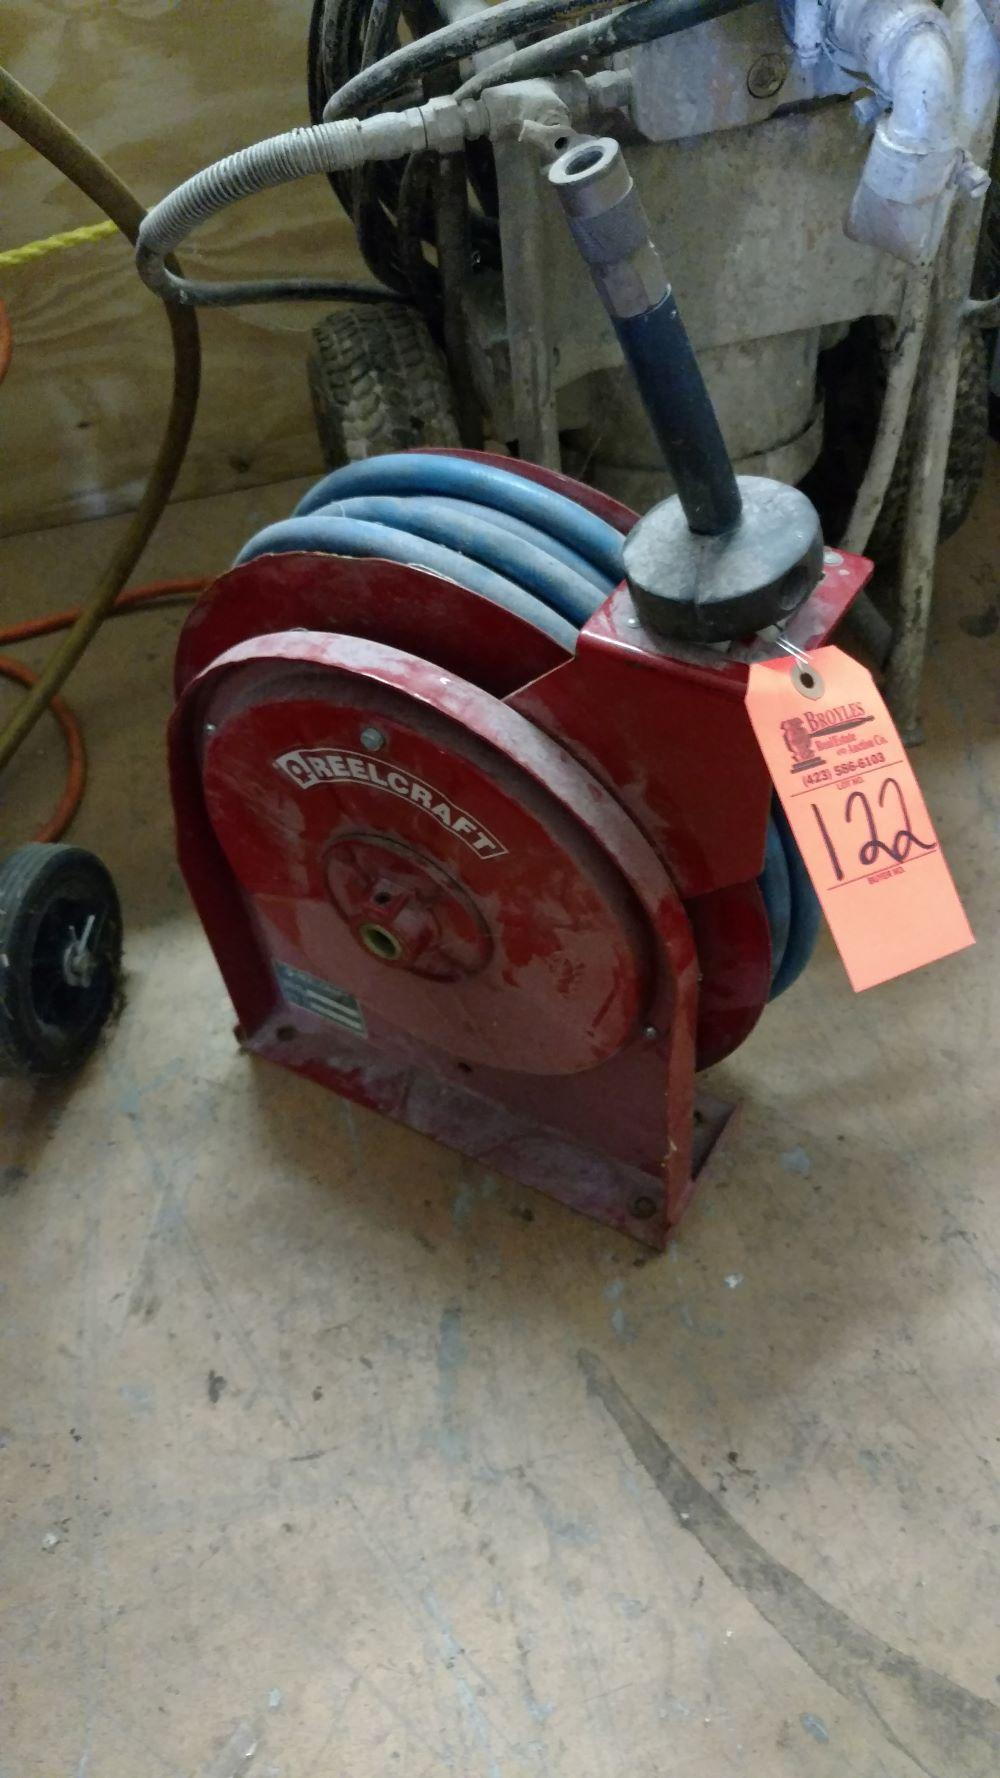 Air hose with reel